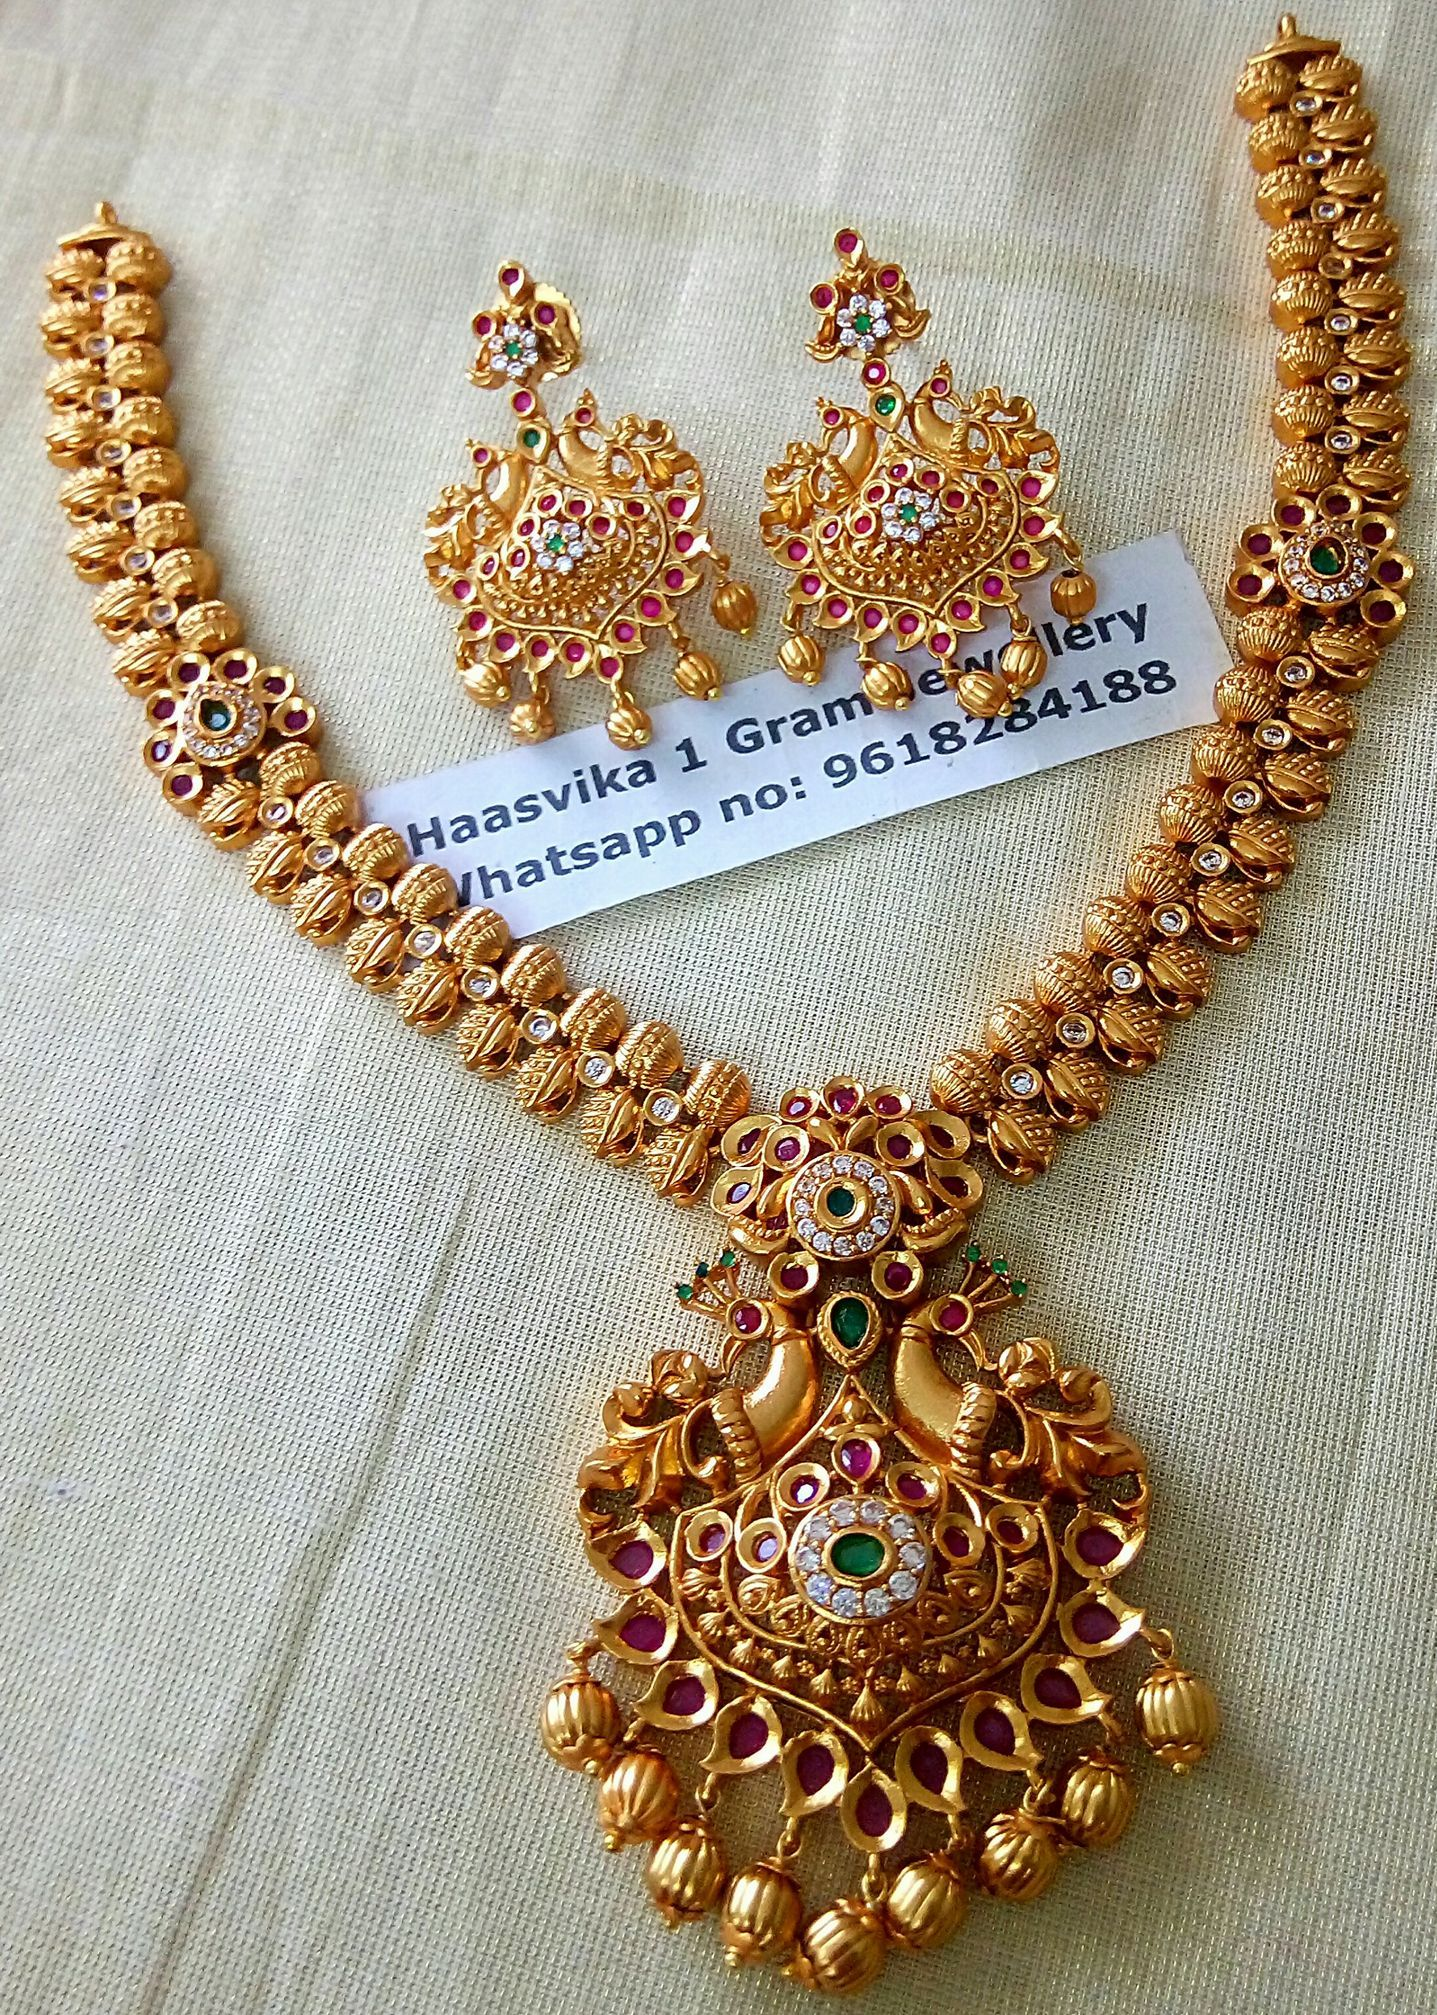 1 gram gold jewellery wholesale. Contact : Whats app on 9618284188.